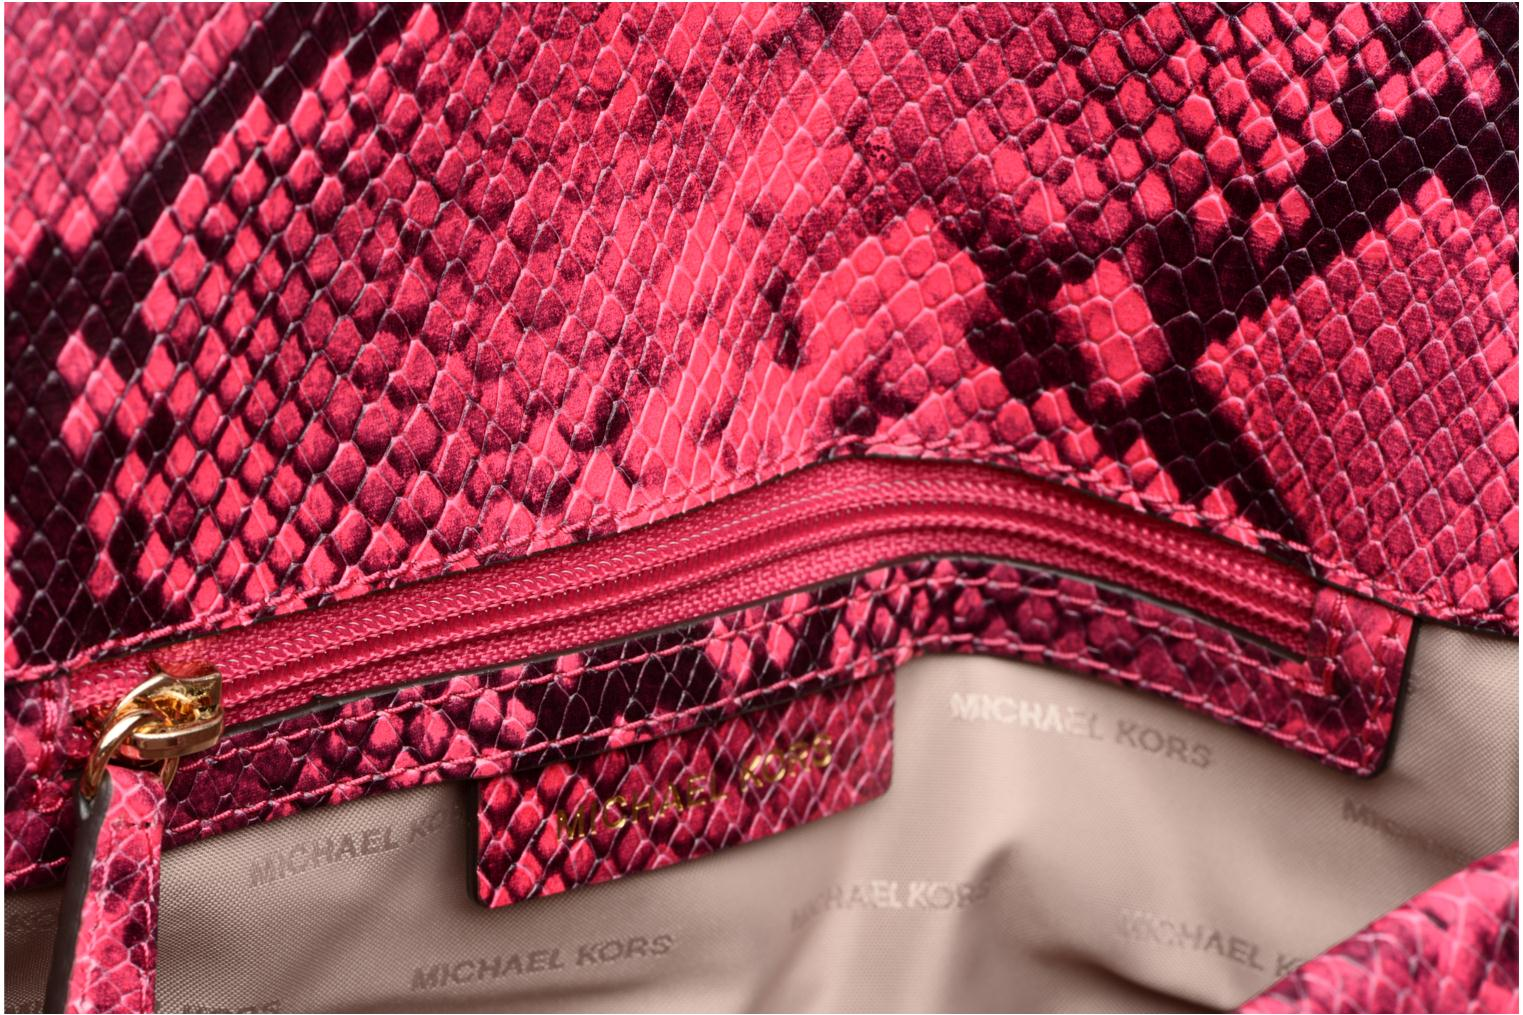 SLOAN MD DOUBLE FLAP 600 RED GLOSSY LUXE PYTHON